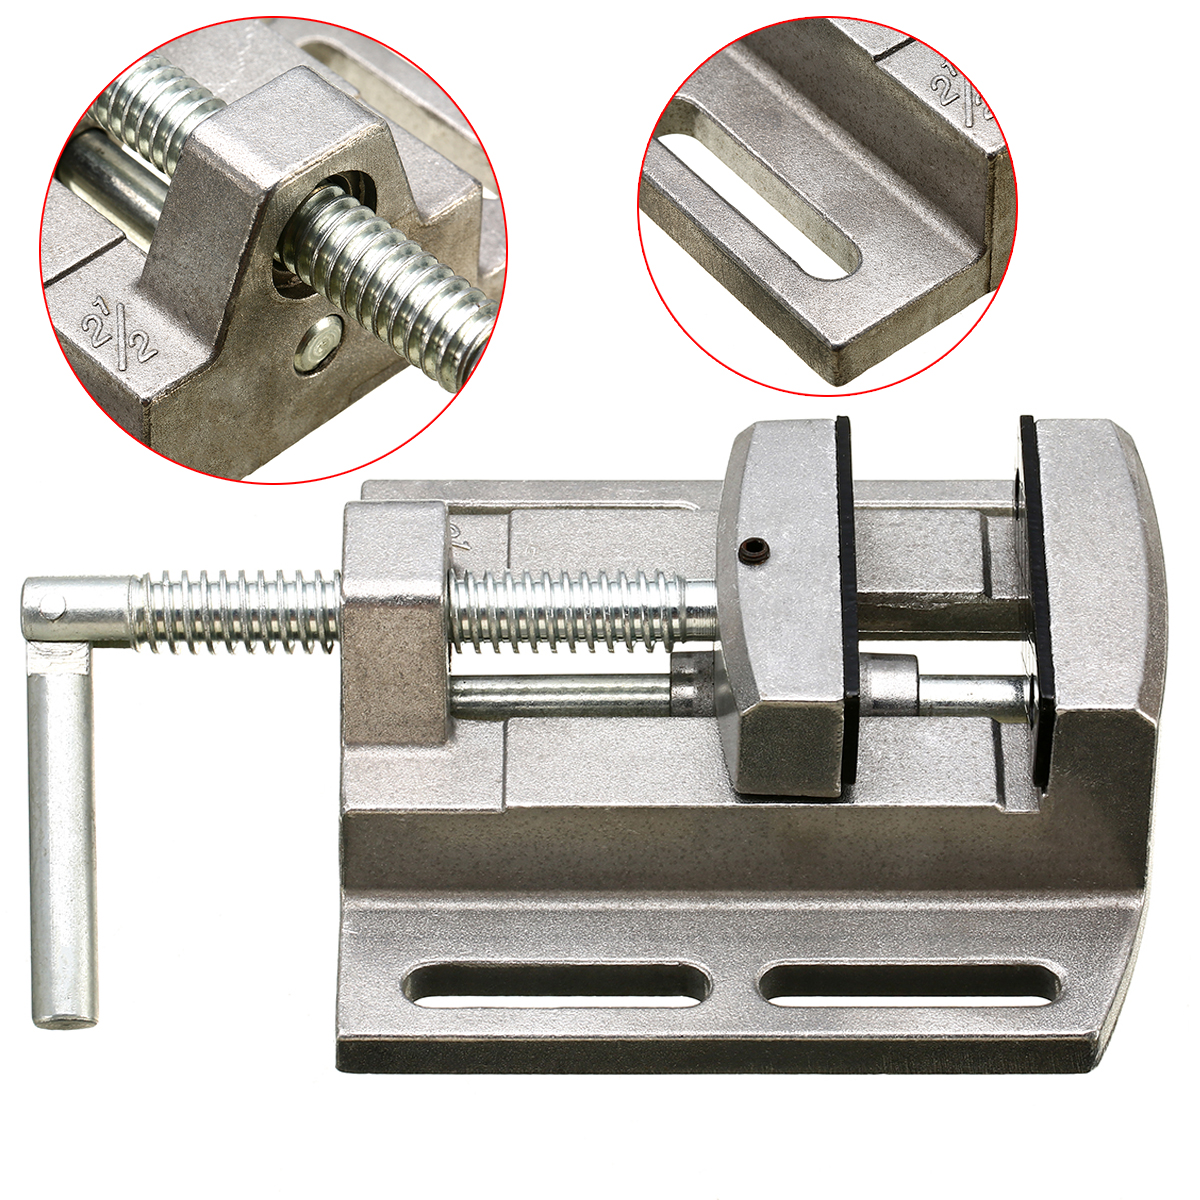 New Arrival 1pc Drill Press Vice Durable Milling Machine Bench Drill Vise Aluminum Alloy Drilling Clamp Machine Tool 8 drill machine press quill feed return coil spring assembly 41mm